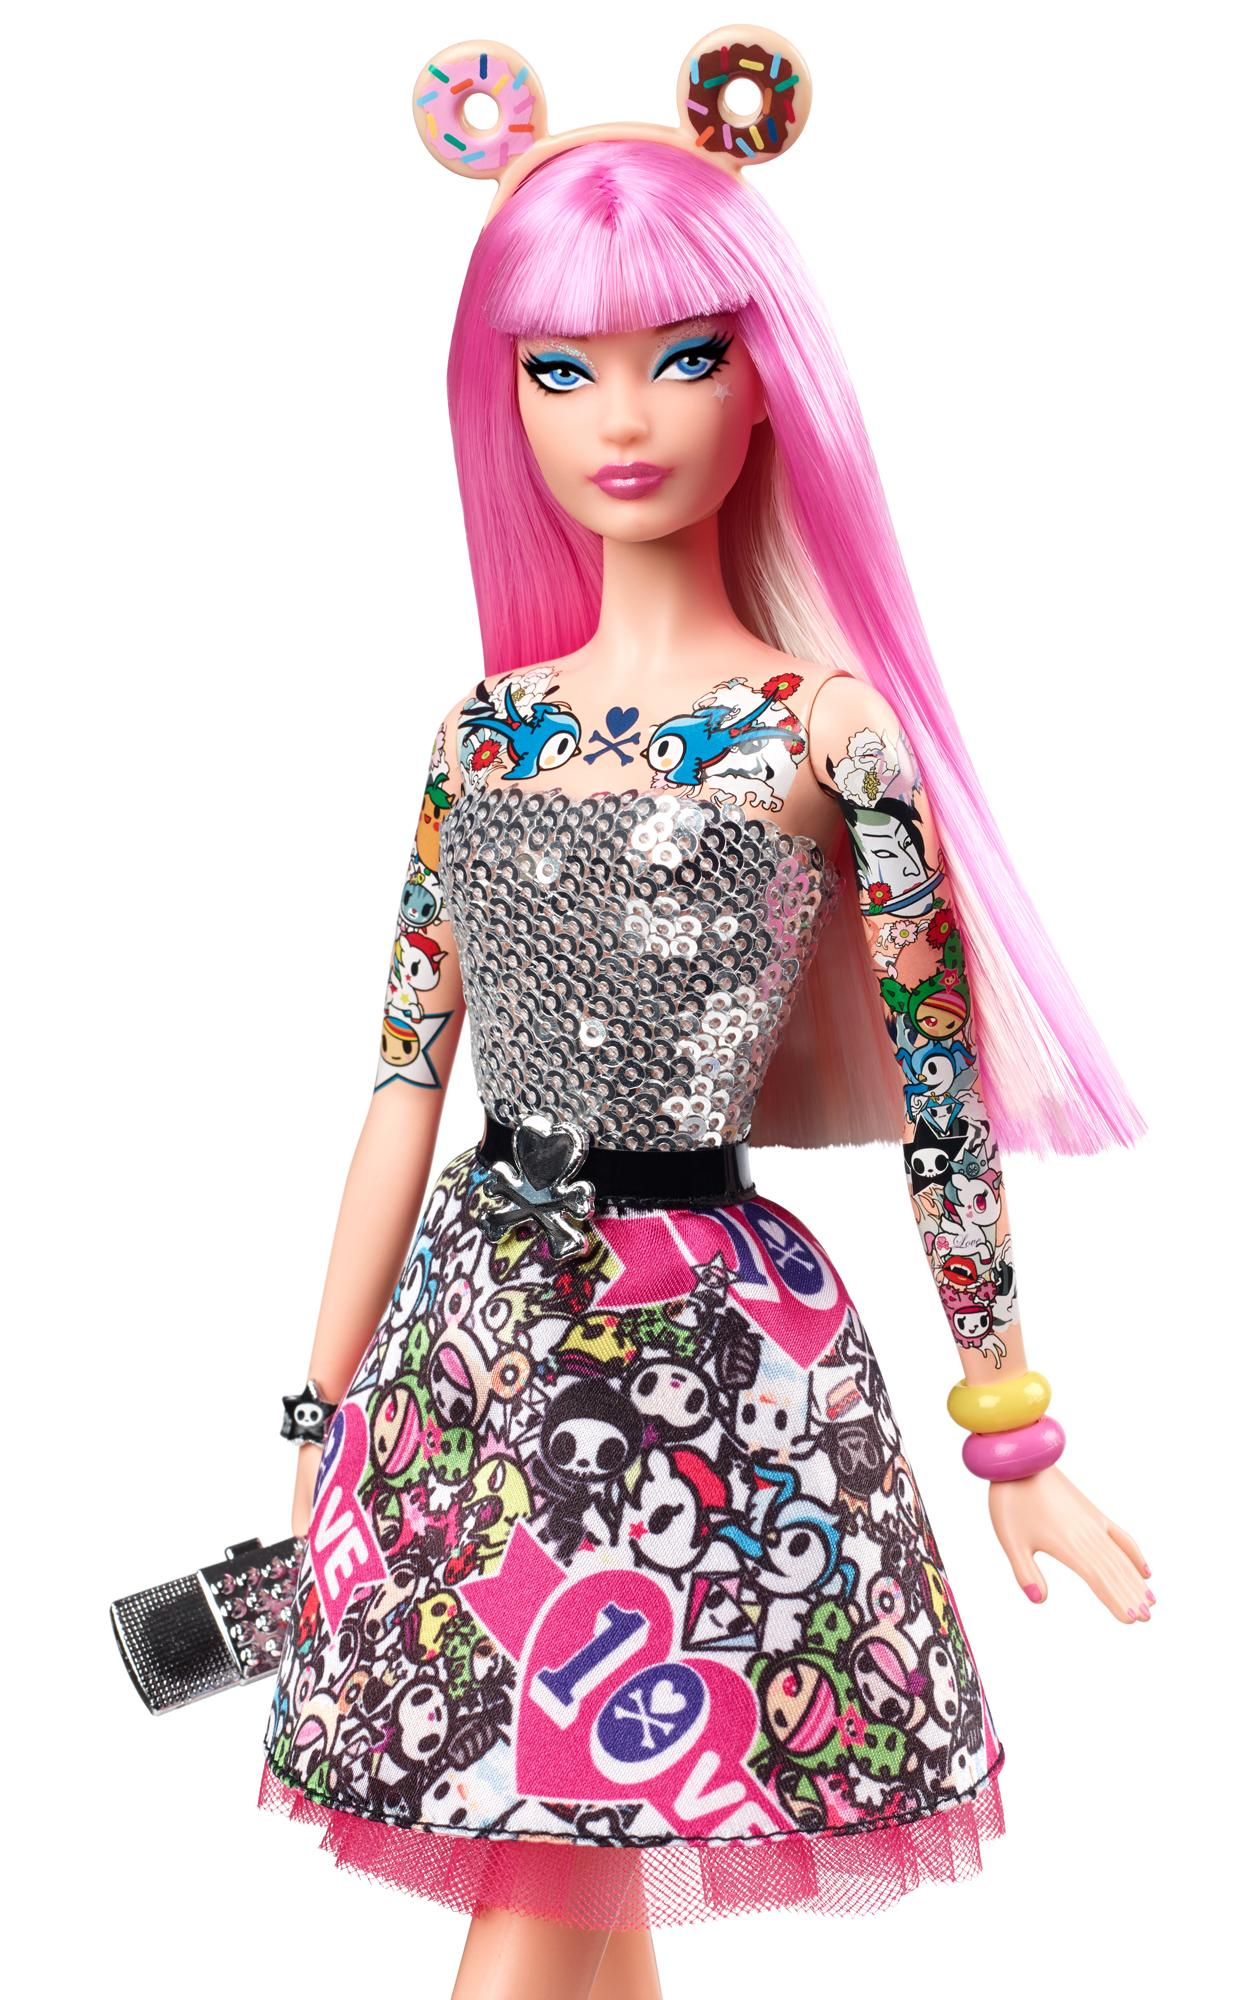 Amazon.com: Barbie 10th Anniversary Tokidoki Barbie: Toys ...